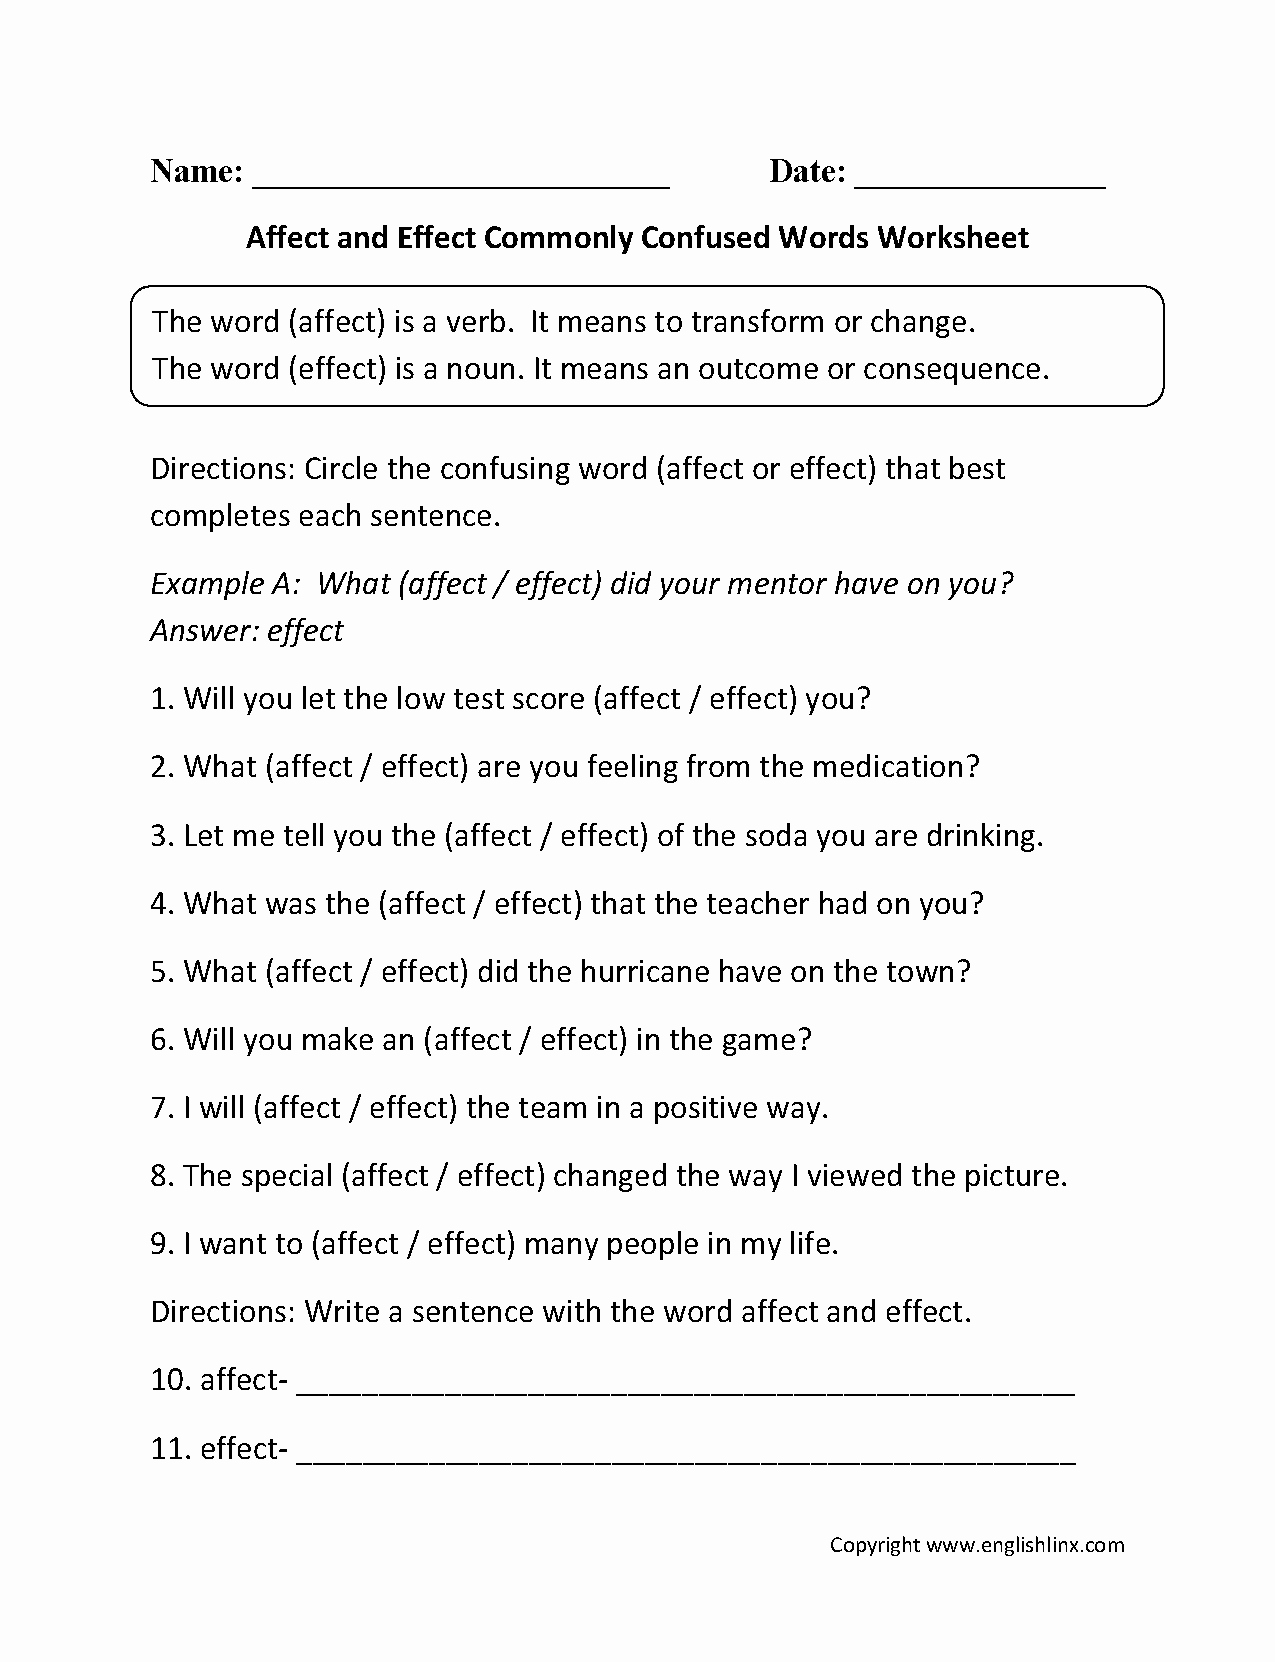 Affect Vs Effect Worksheet Lovely Affect and Effect Monly Confused Words Worksheets